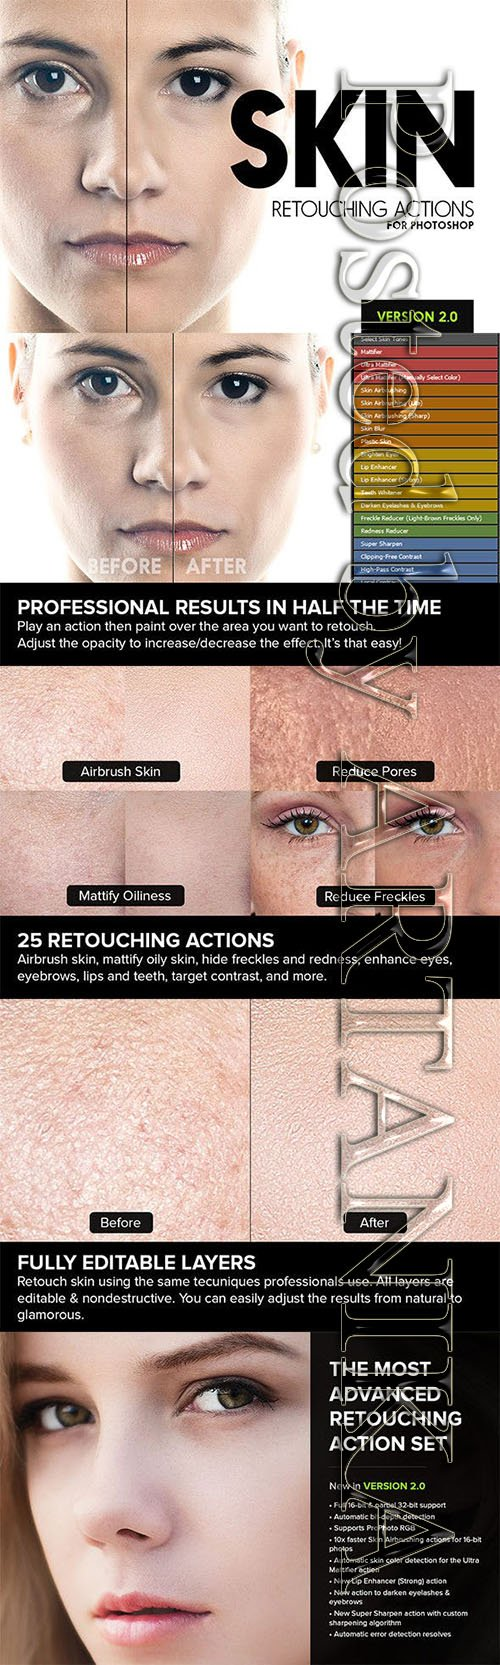 Graphicriver - Skin - 25 Retouching Actions 4419074